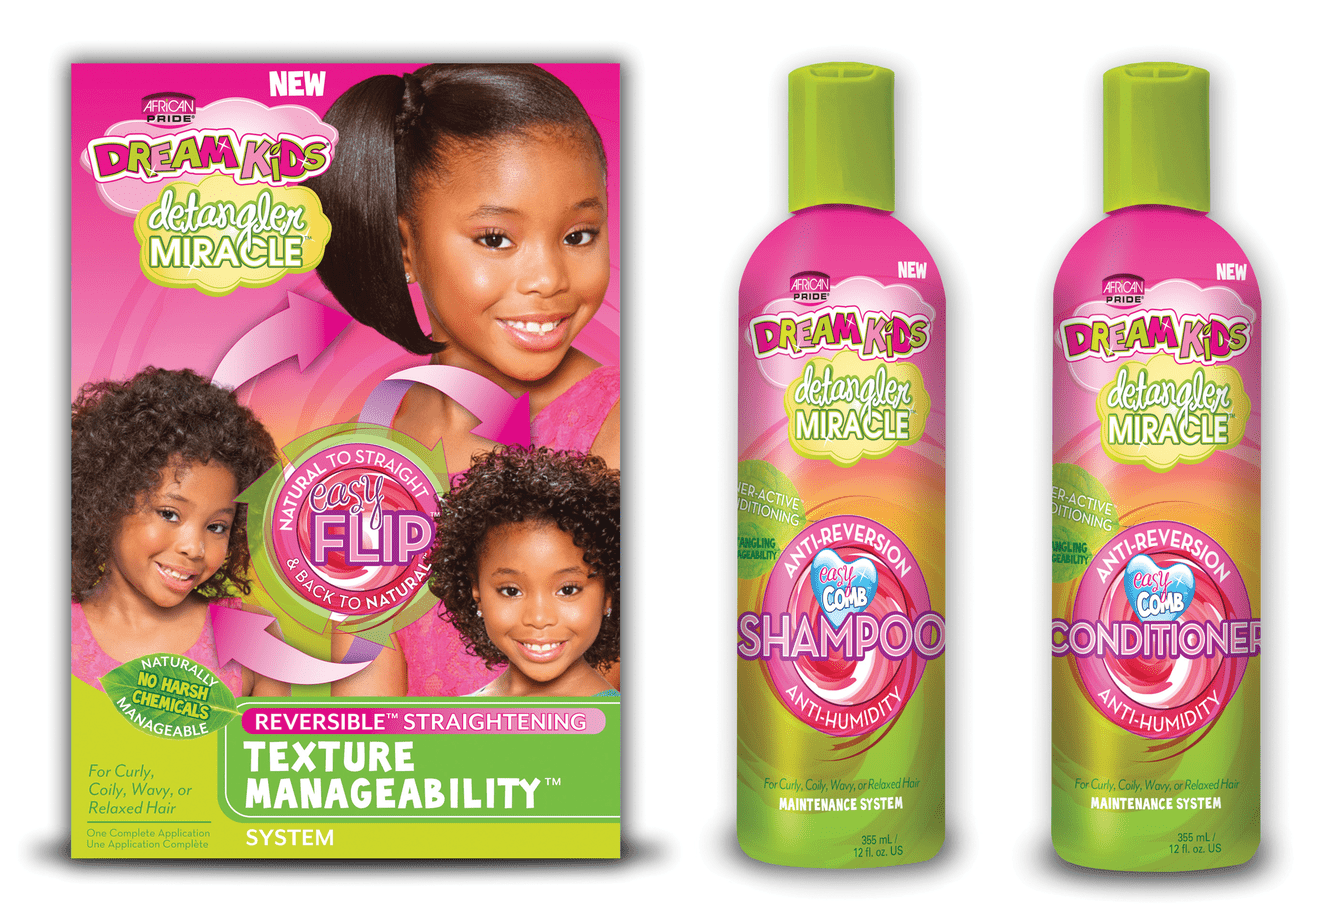 Dream Kids Detangler Miracle Texture Management System Results The